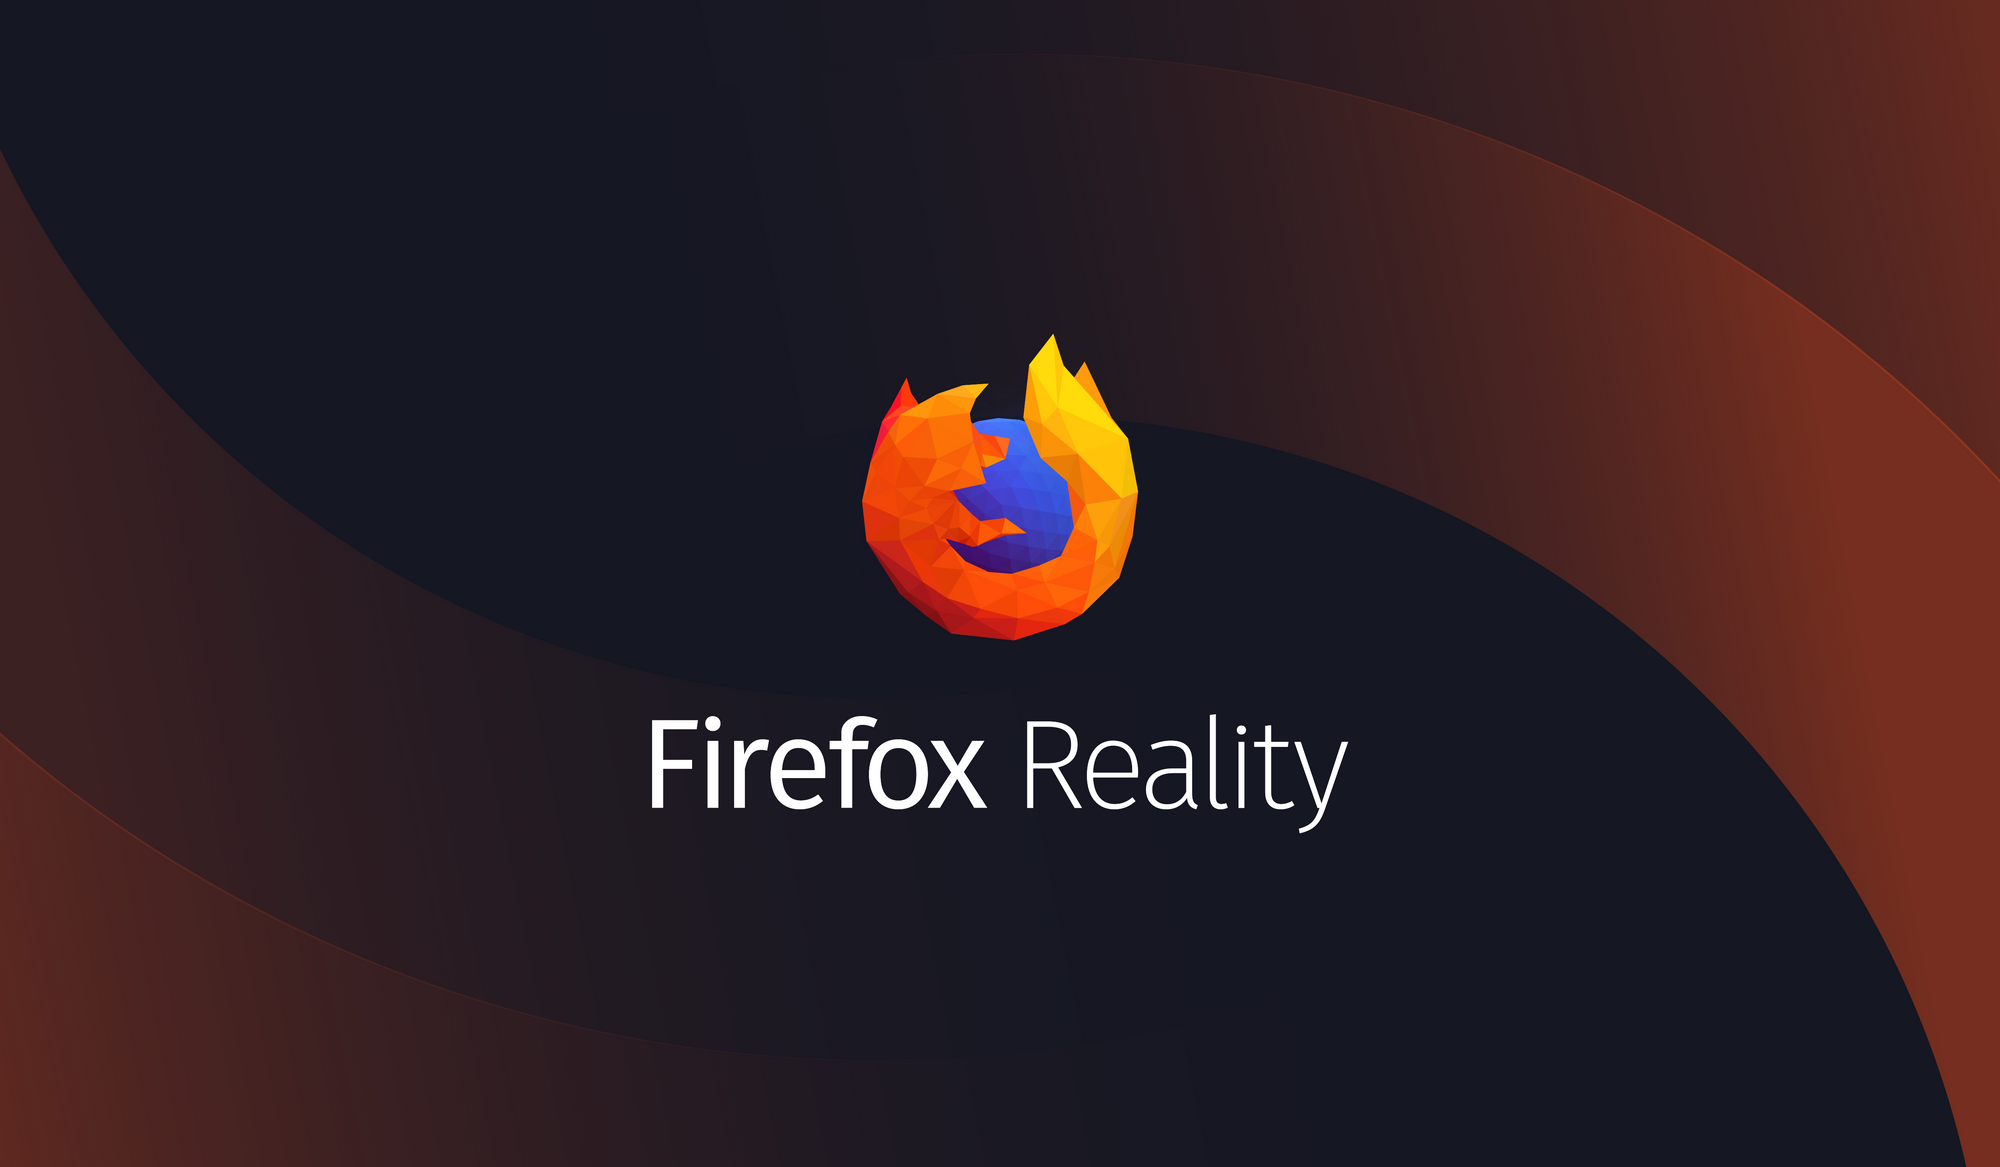 Mozilla Announces Deal to Bring Firefox Reality to Pico Devices